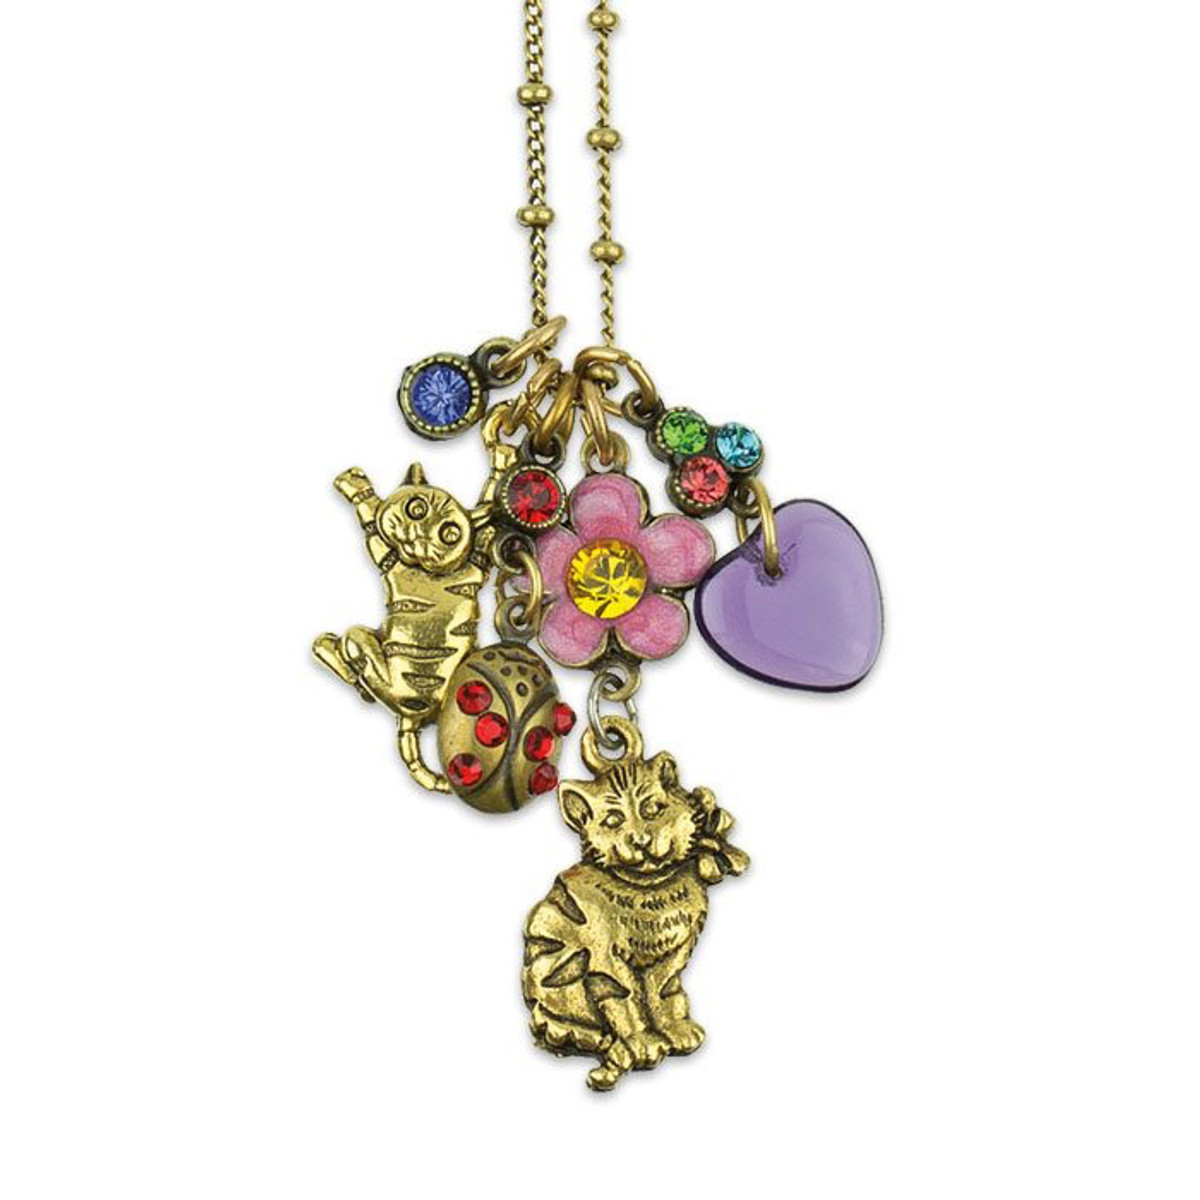 Loving My Cat Jumble Charm Necklace